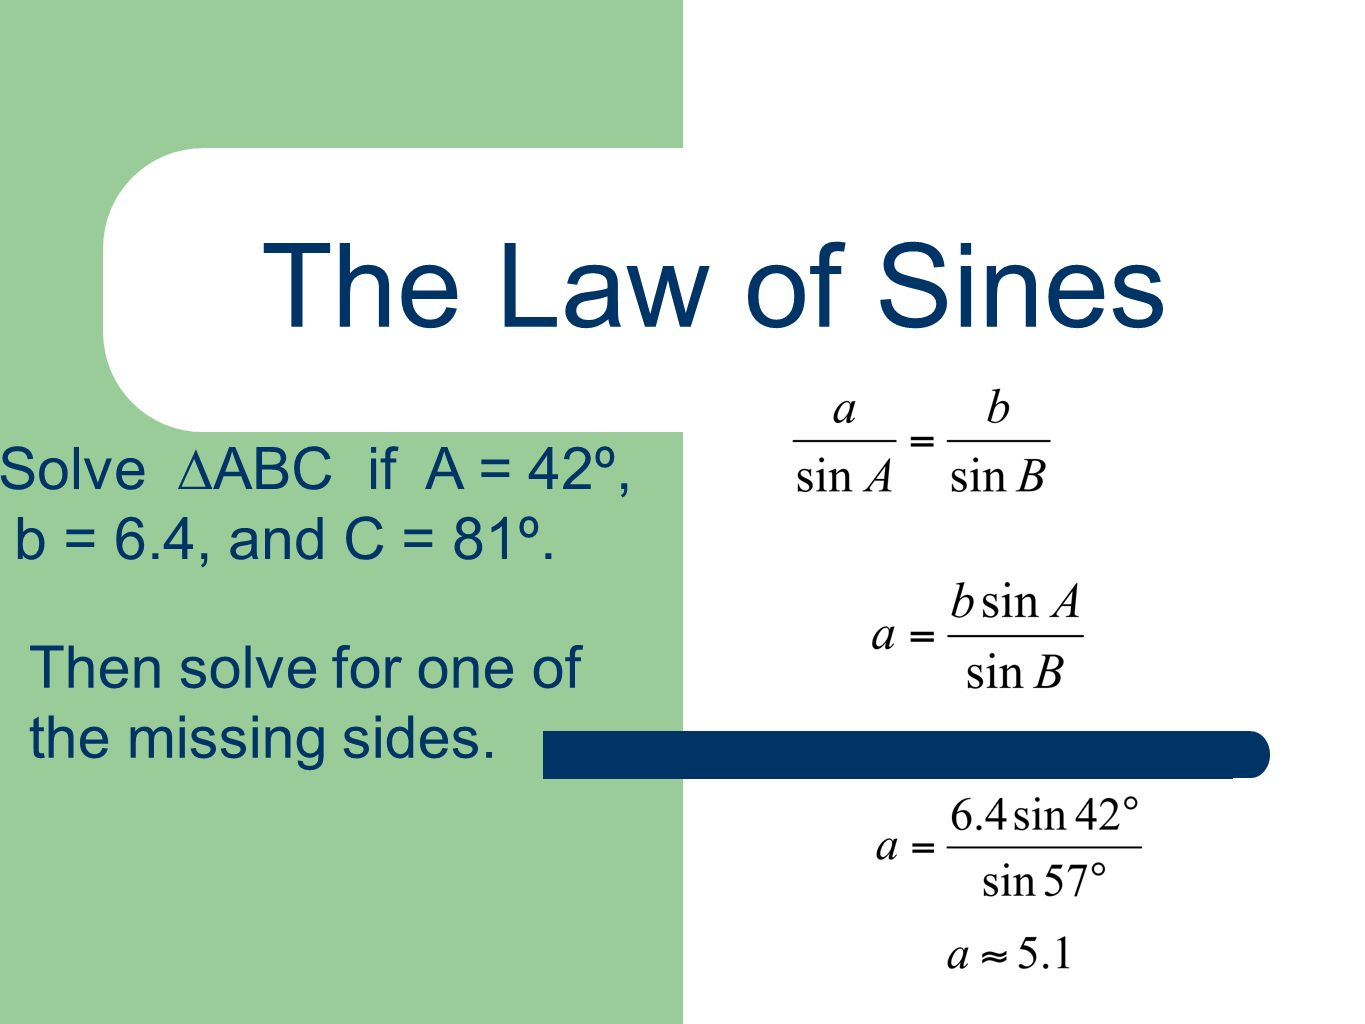 The Law of Sines Solve ABC if A = 42º, b = 6.4, and C = 81º. Then solve for one of the missing sides.